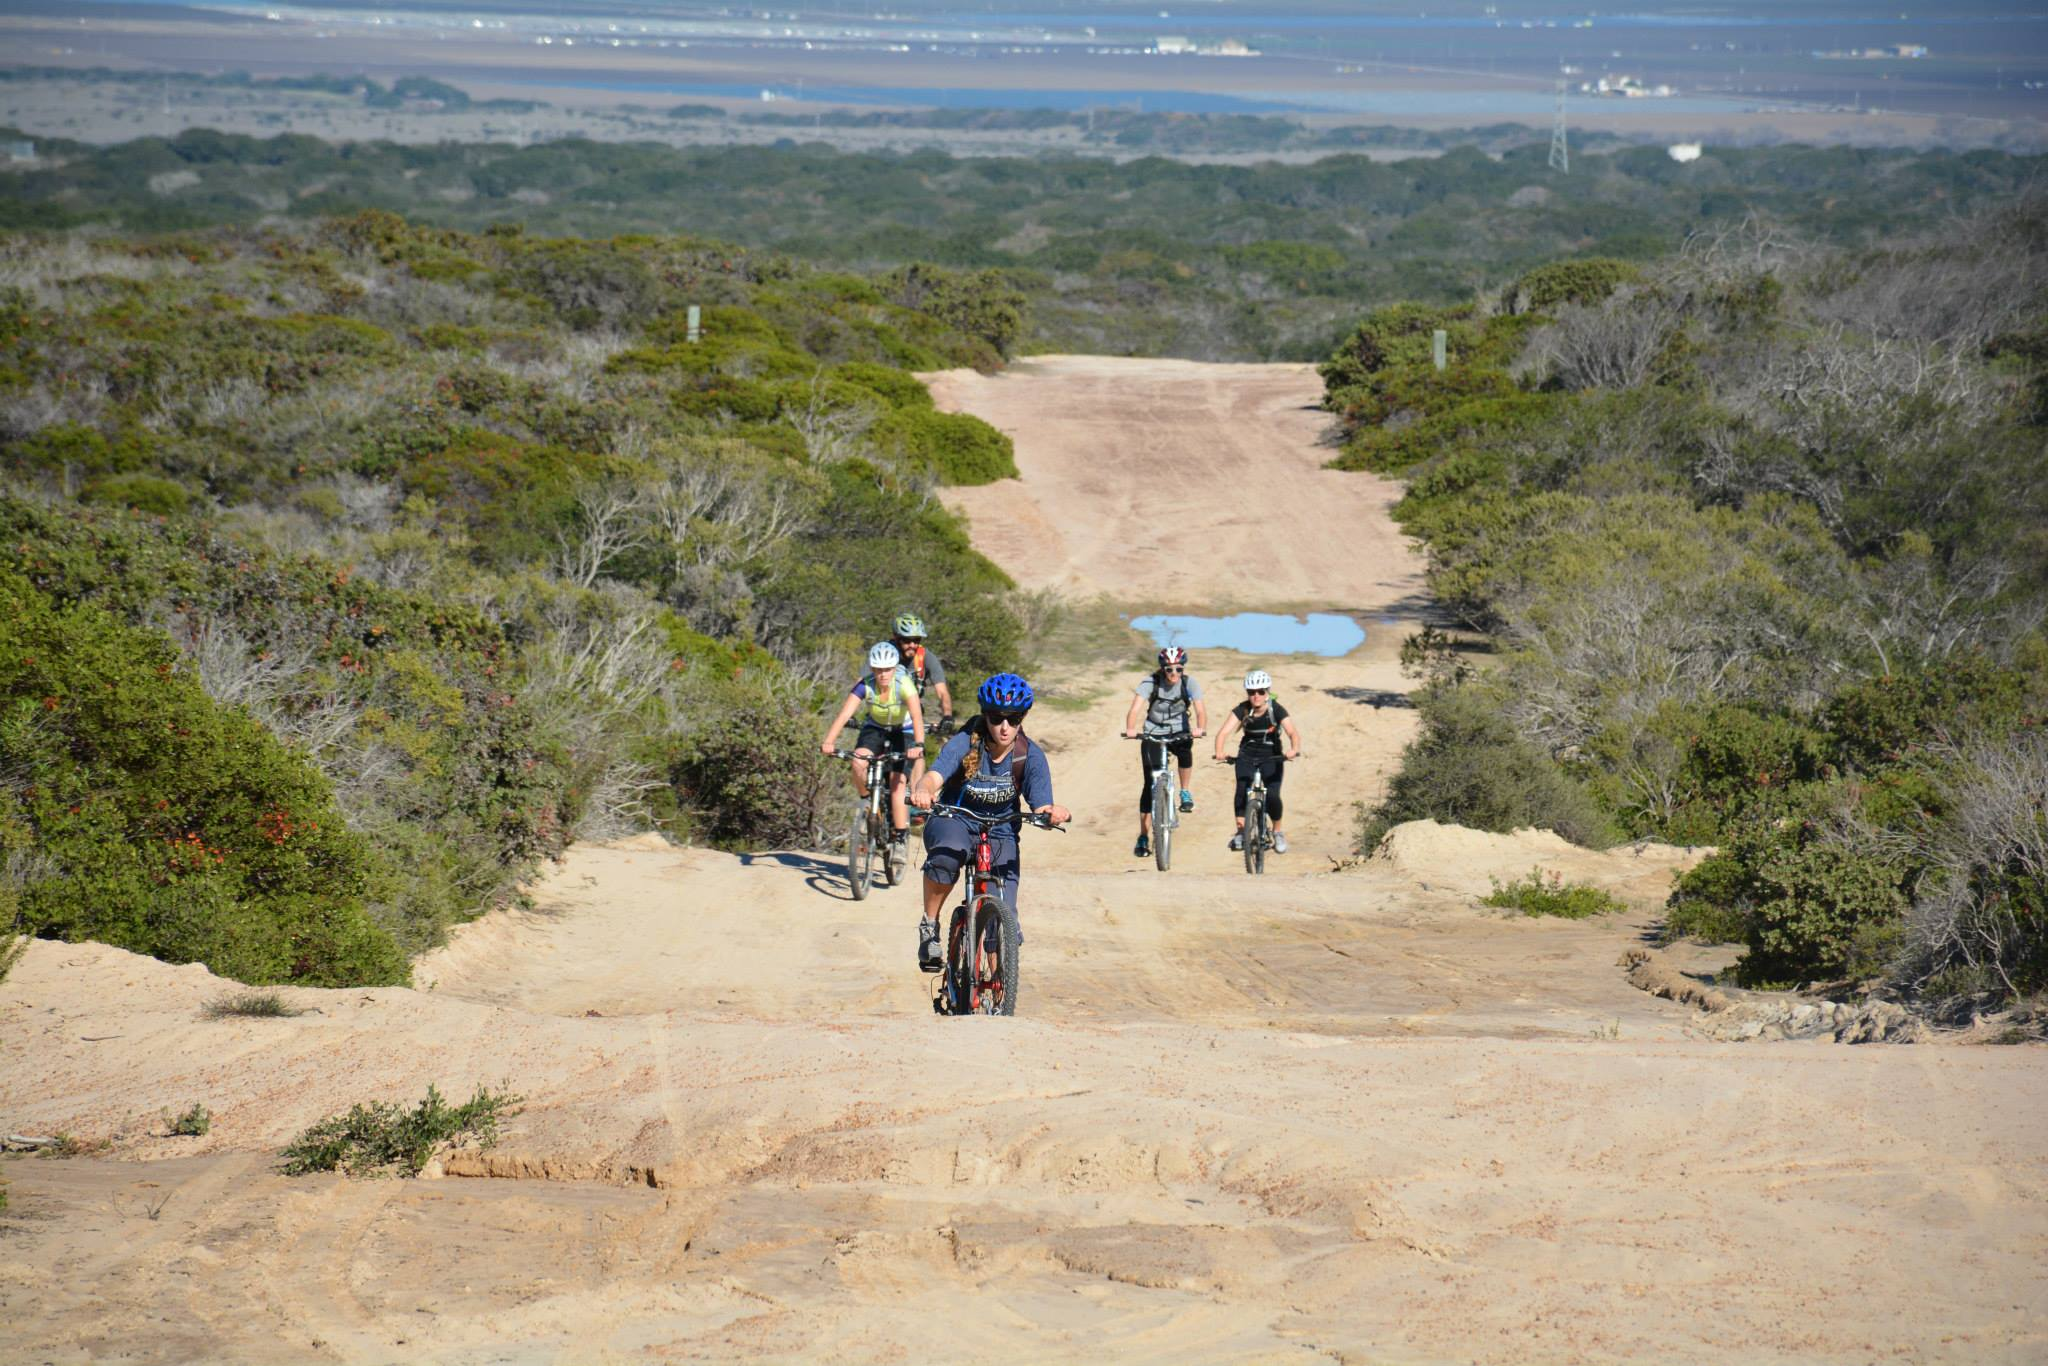 Mountain biking on Fort Ord